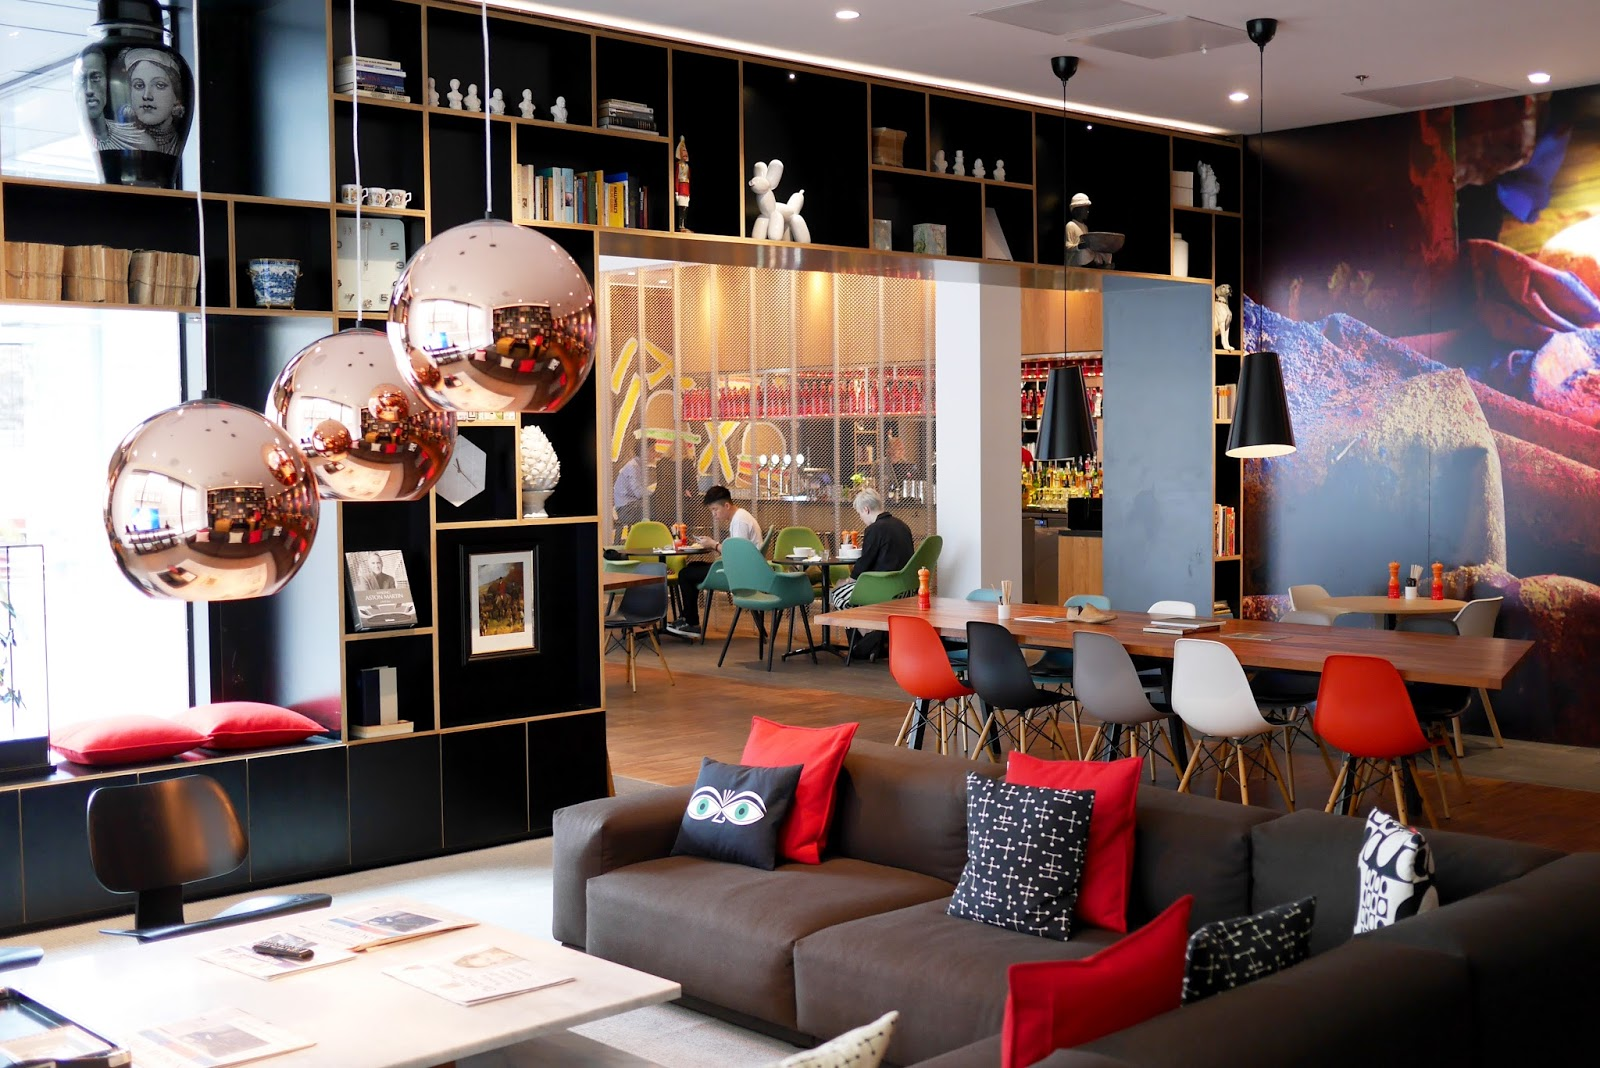 design hotel citizenm london, buckets & spades - men's fashion, design and lifestyle blog: reasons, Design ideen